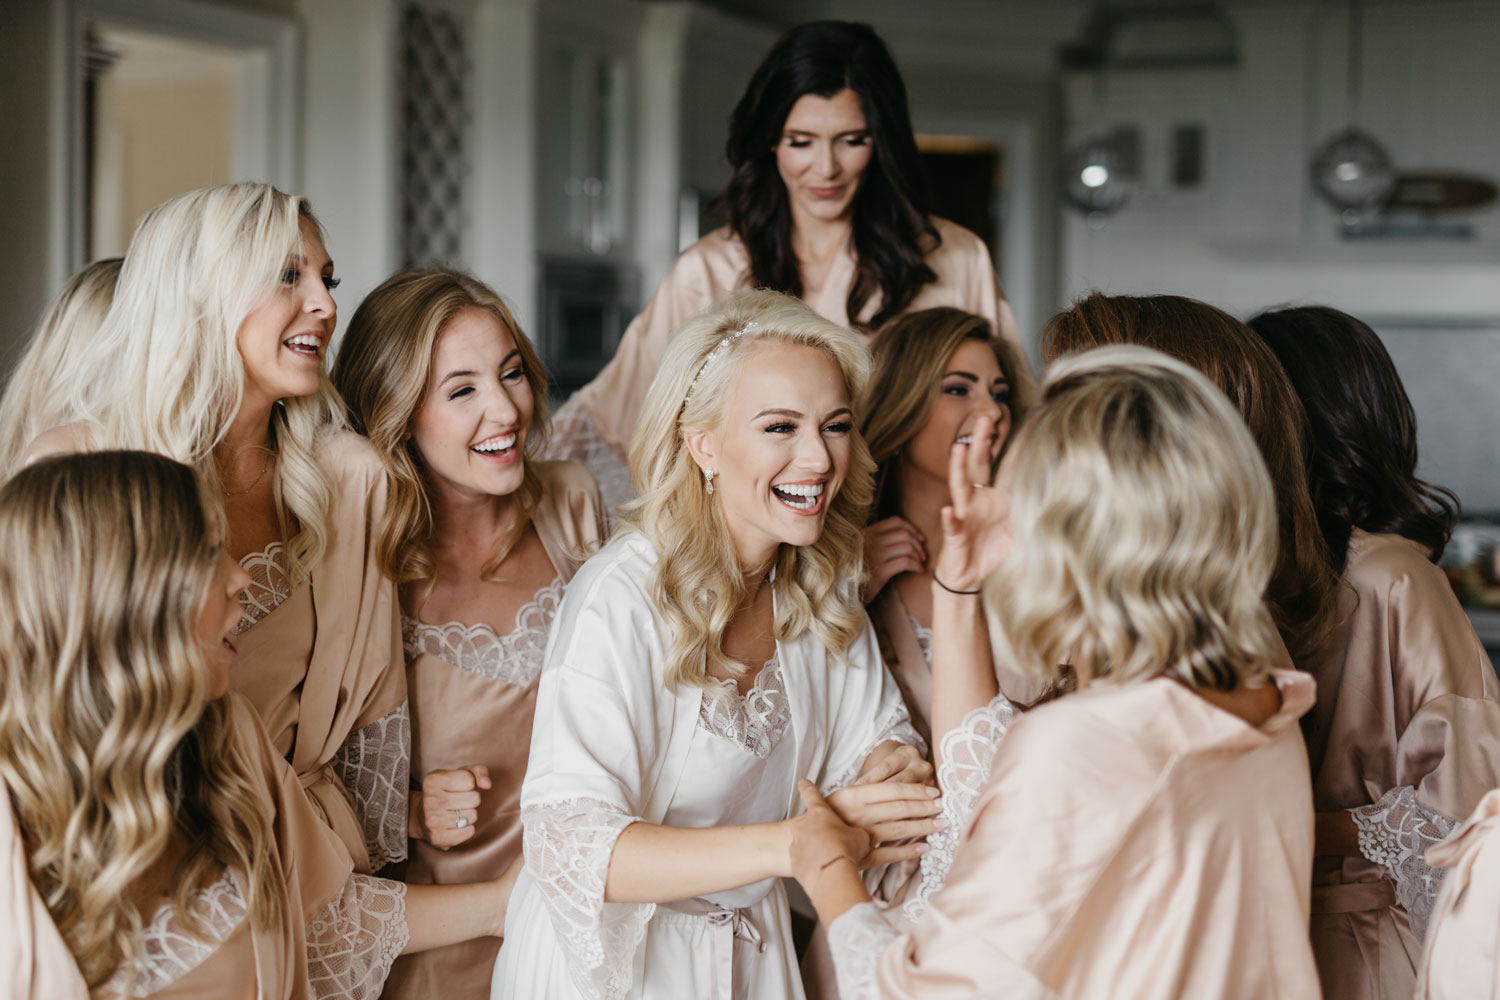 bride with bridesmaids in getting ready robes laughing together the morning of the wedding